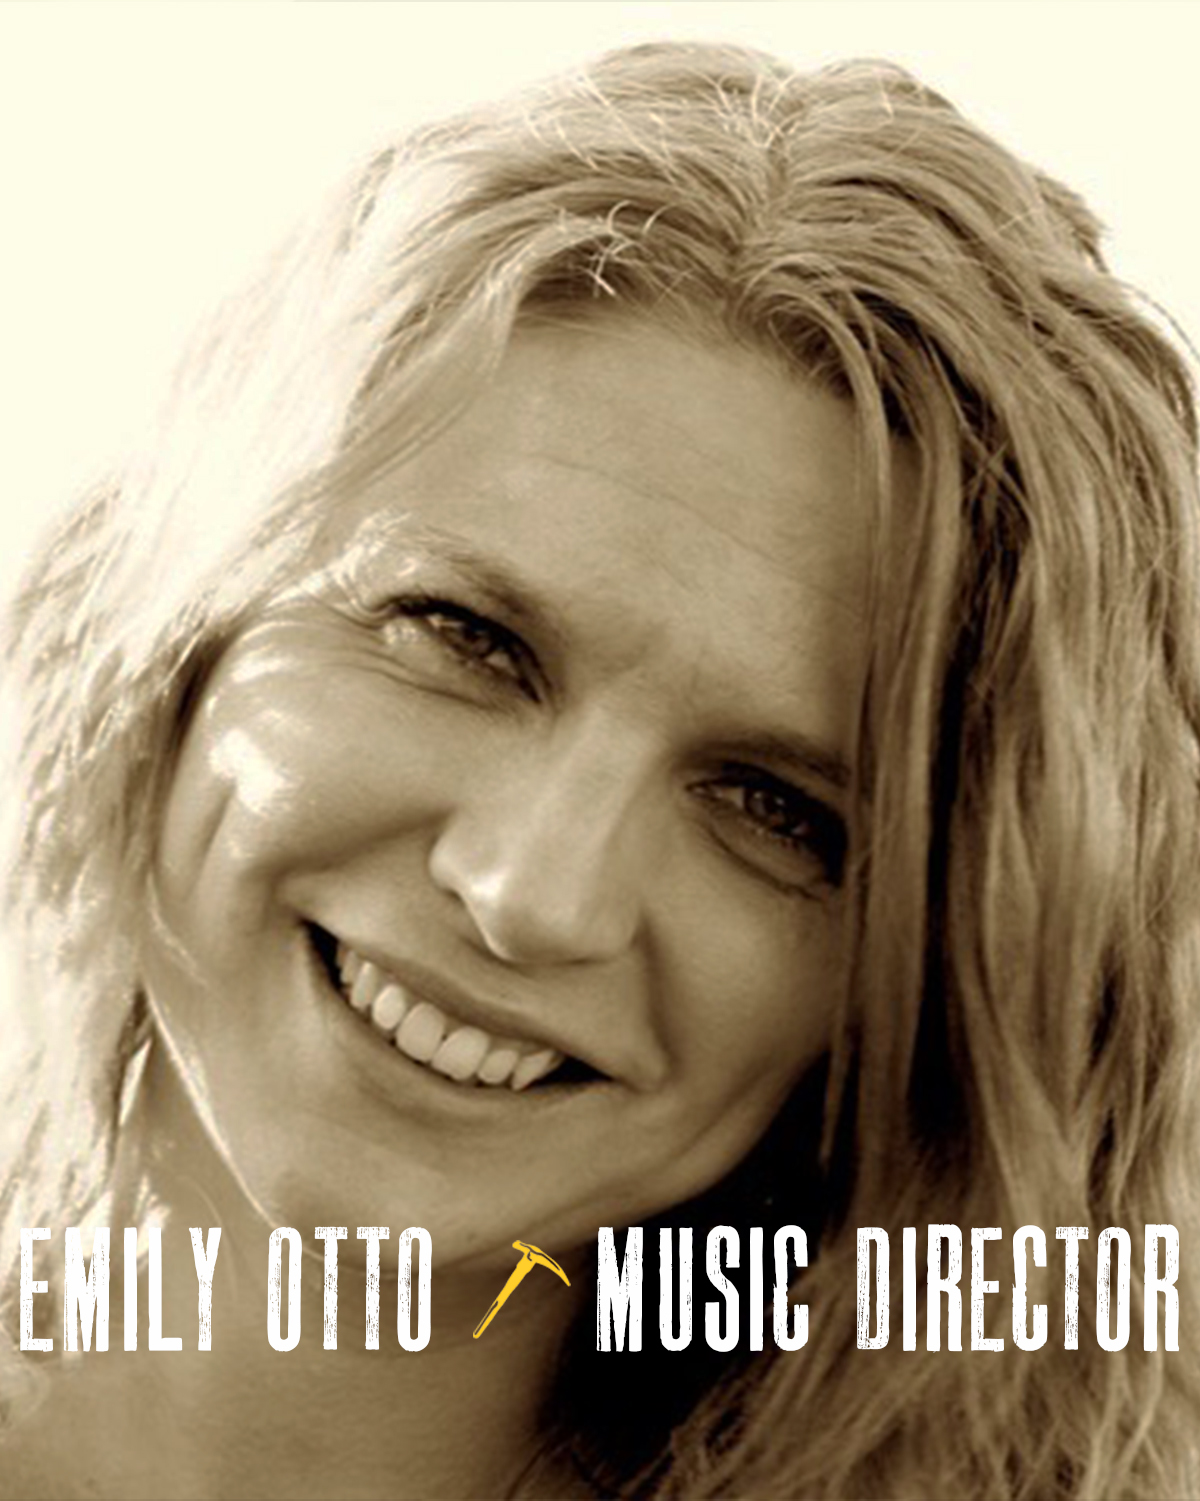 EMILY OTTO  (Music Director) is a music director, arranger, performer, dramaturg, and educator. Her music directing/supervising credits include  Southern Comfort  (Barrington Stage and CAP21),  The Water Dream  (NYMF),  Incredibly Deaf Musical  (NYMF), and the serial cabaret  Shells  at Joe's Pub. She is a co-creator of eight original productions with NYC's Stolen Chair Theatre Company. Emily has also dramaturged for directors Martha Clarke, Neil Bartlett, and Robert Woodruff at the American Repertory Theatre and the San Francisco Opera. She holds an MFA in dramaturgy from ART/MXAT Institute at Harvard University and a BA in theatre and music from Concordia College.